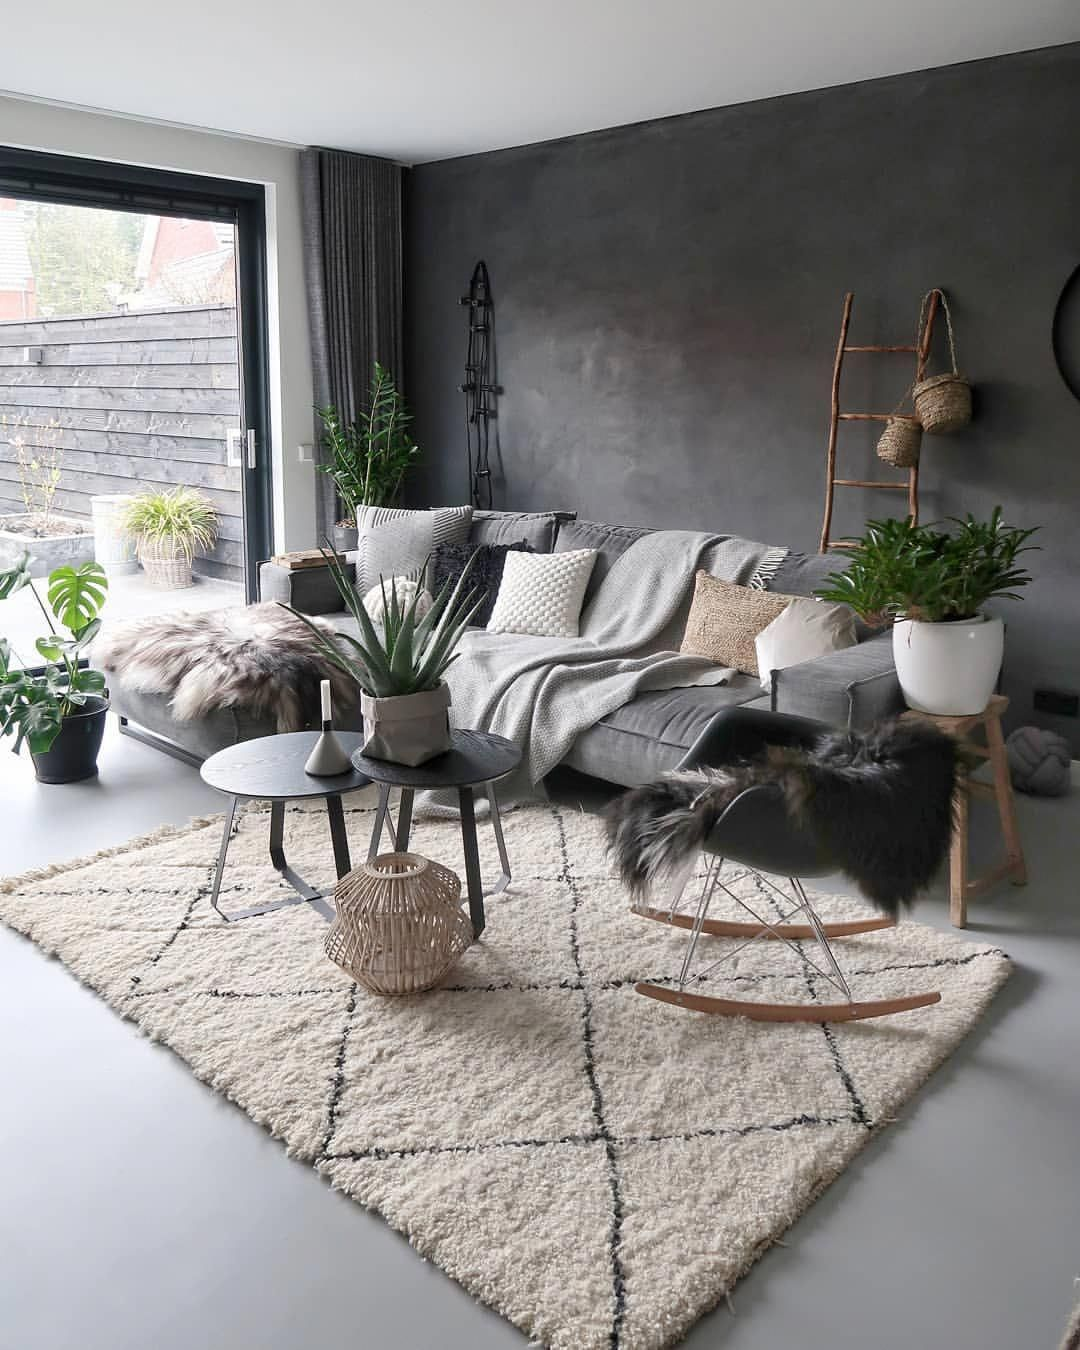 Nordic Style Living Room With White Geometric Rug Grey Sofa Plants And Cushions Contemp Living Room Decor Modern Living Room Scandinavian Rustic Living Room